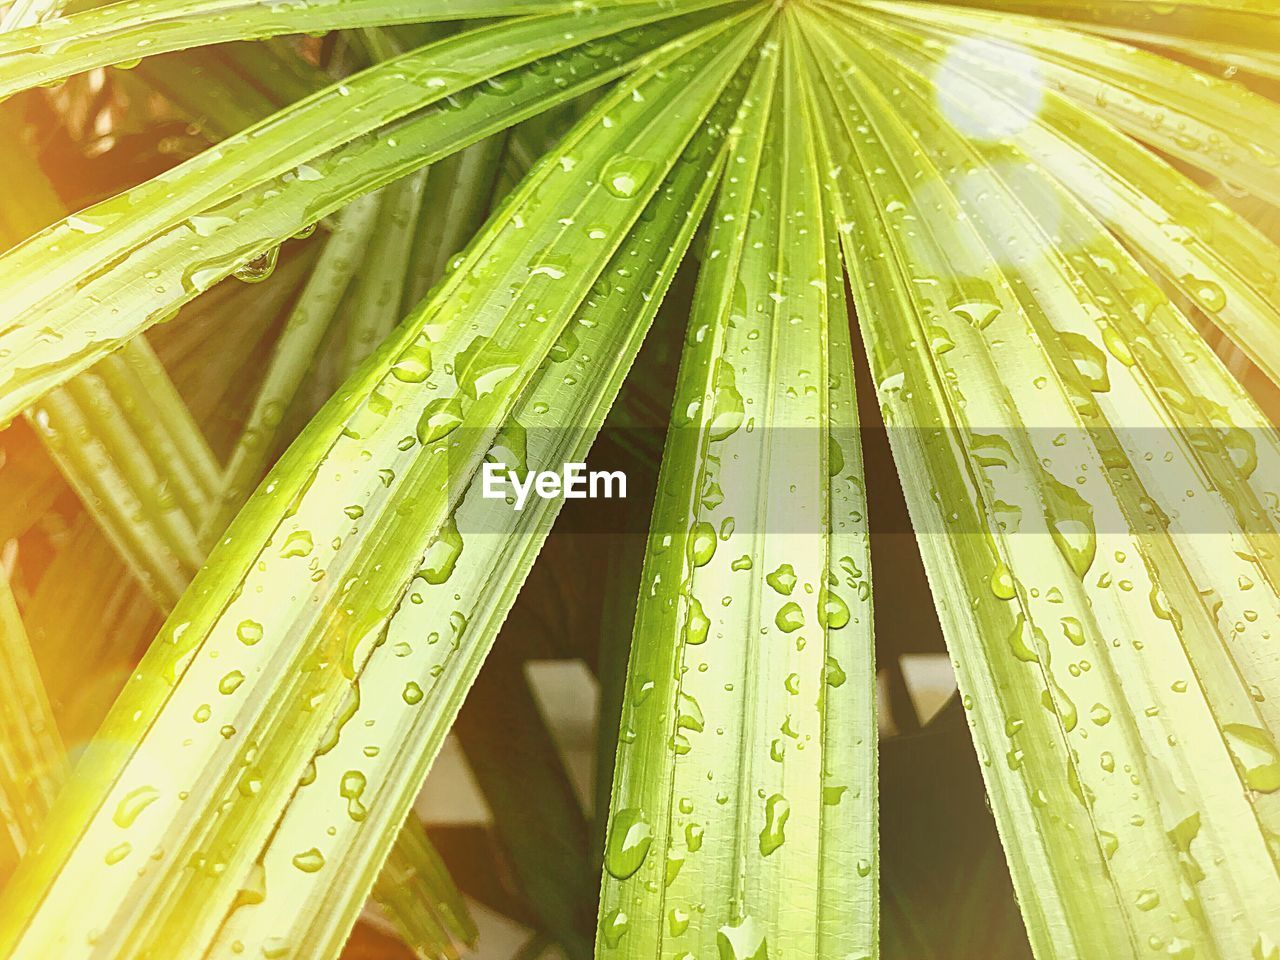 green color, growth, drop, water, plant, wet, nature, no people, close-up, beauty in nature, leaf, day, freshness, plant part, focus on foreground, grass, outdoors, blade of grass, rain, raindrop, dew, rainy season, leaves, purity, bamboo - plant